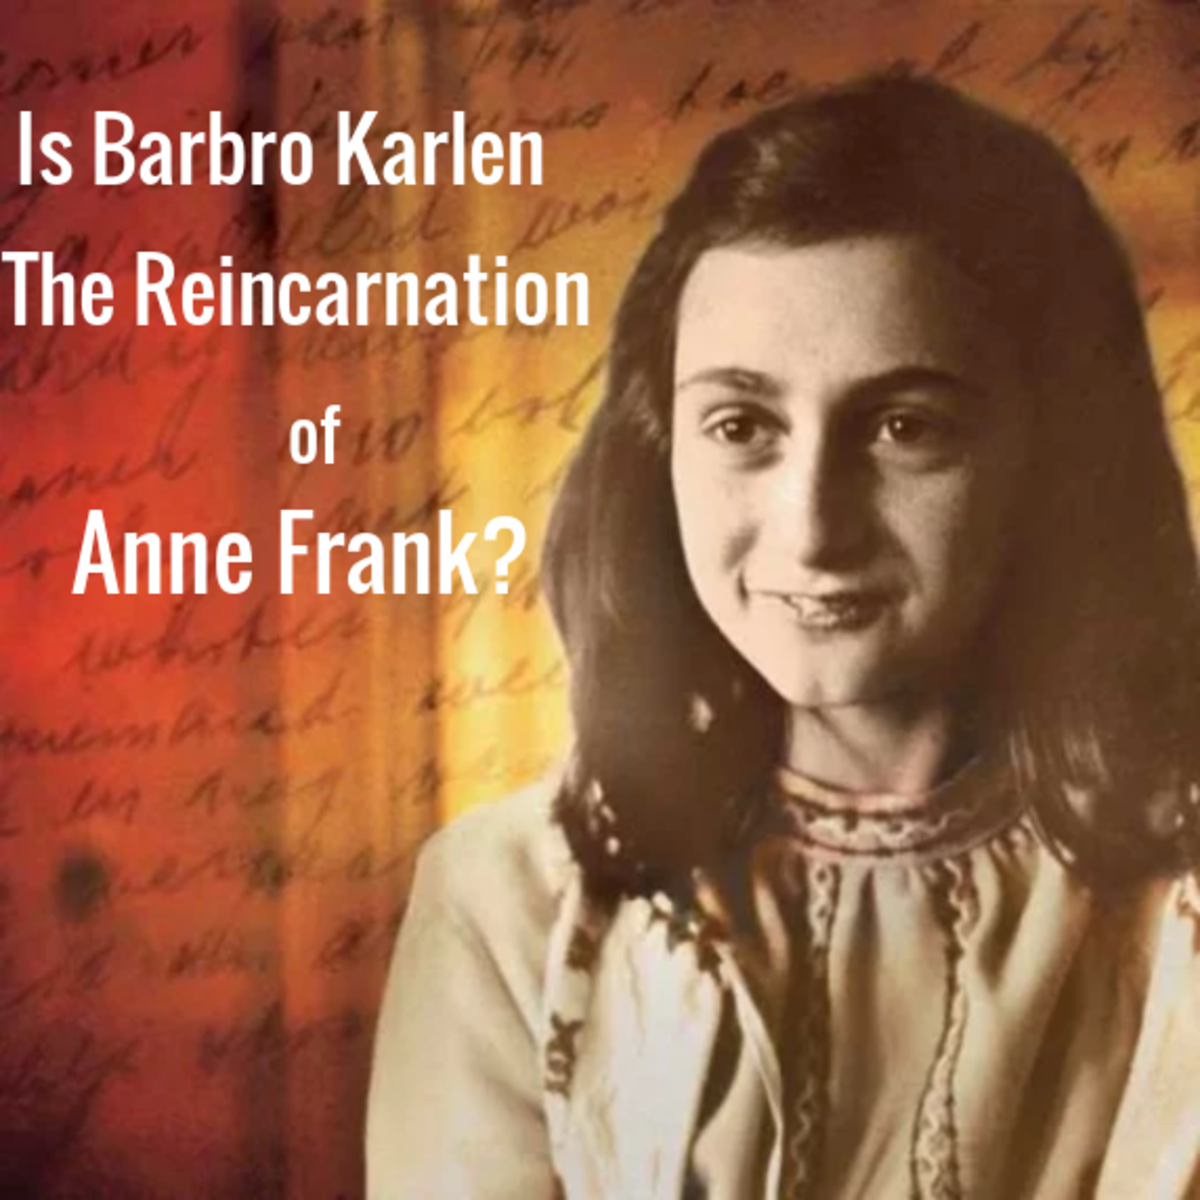 Barbro Karlen #Reincarnation Anne Frank Reincarnation reincarated #BarbroKarlen #AnneFrank